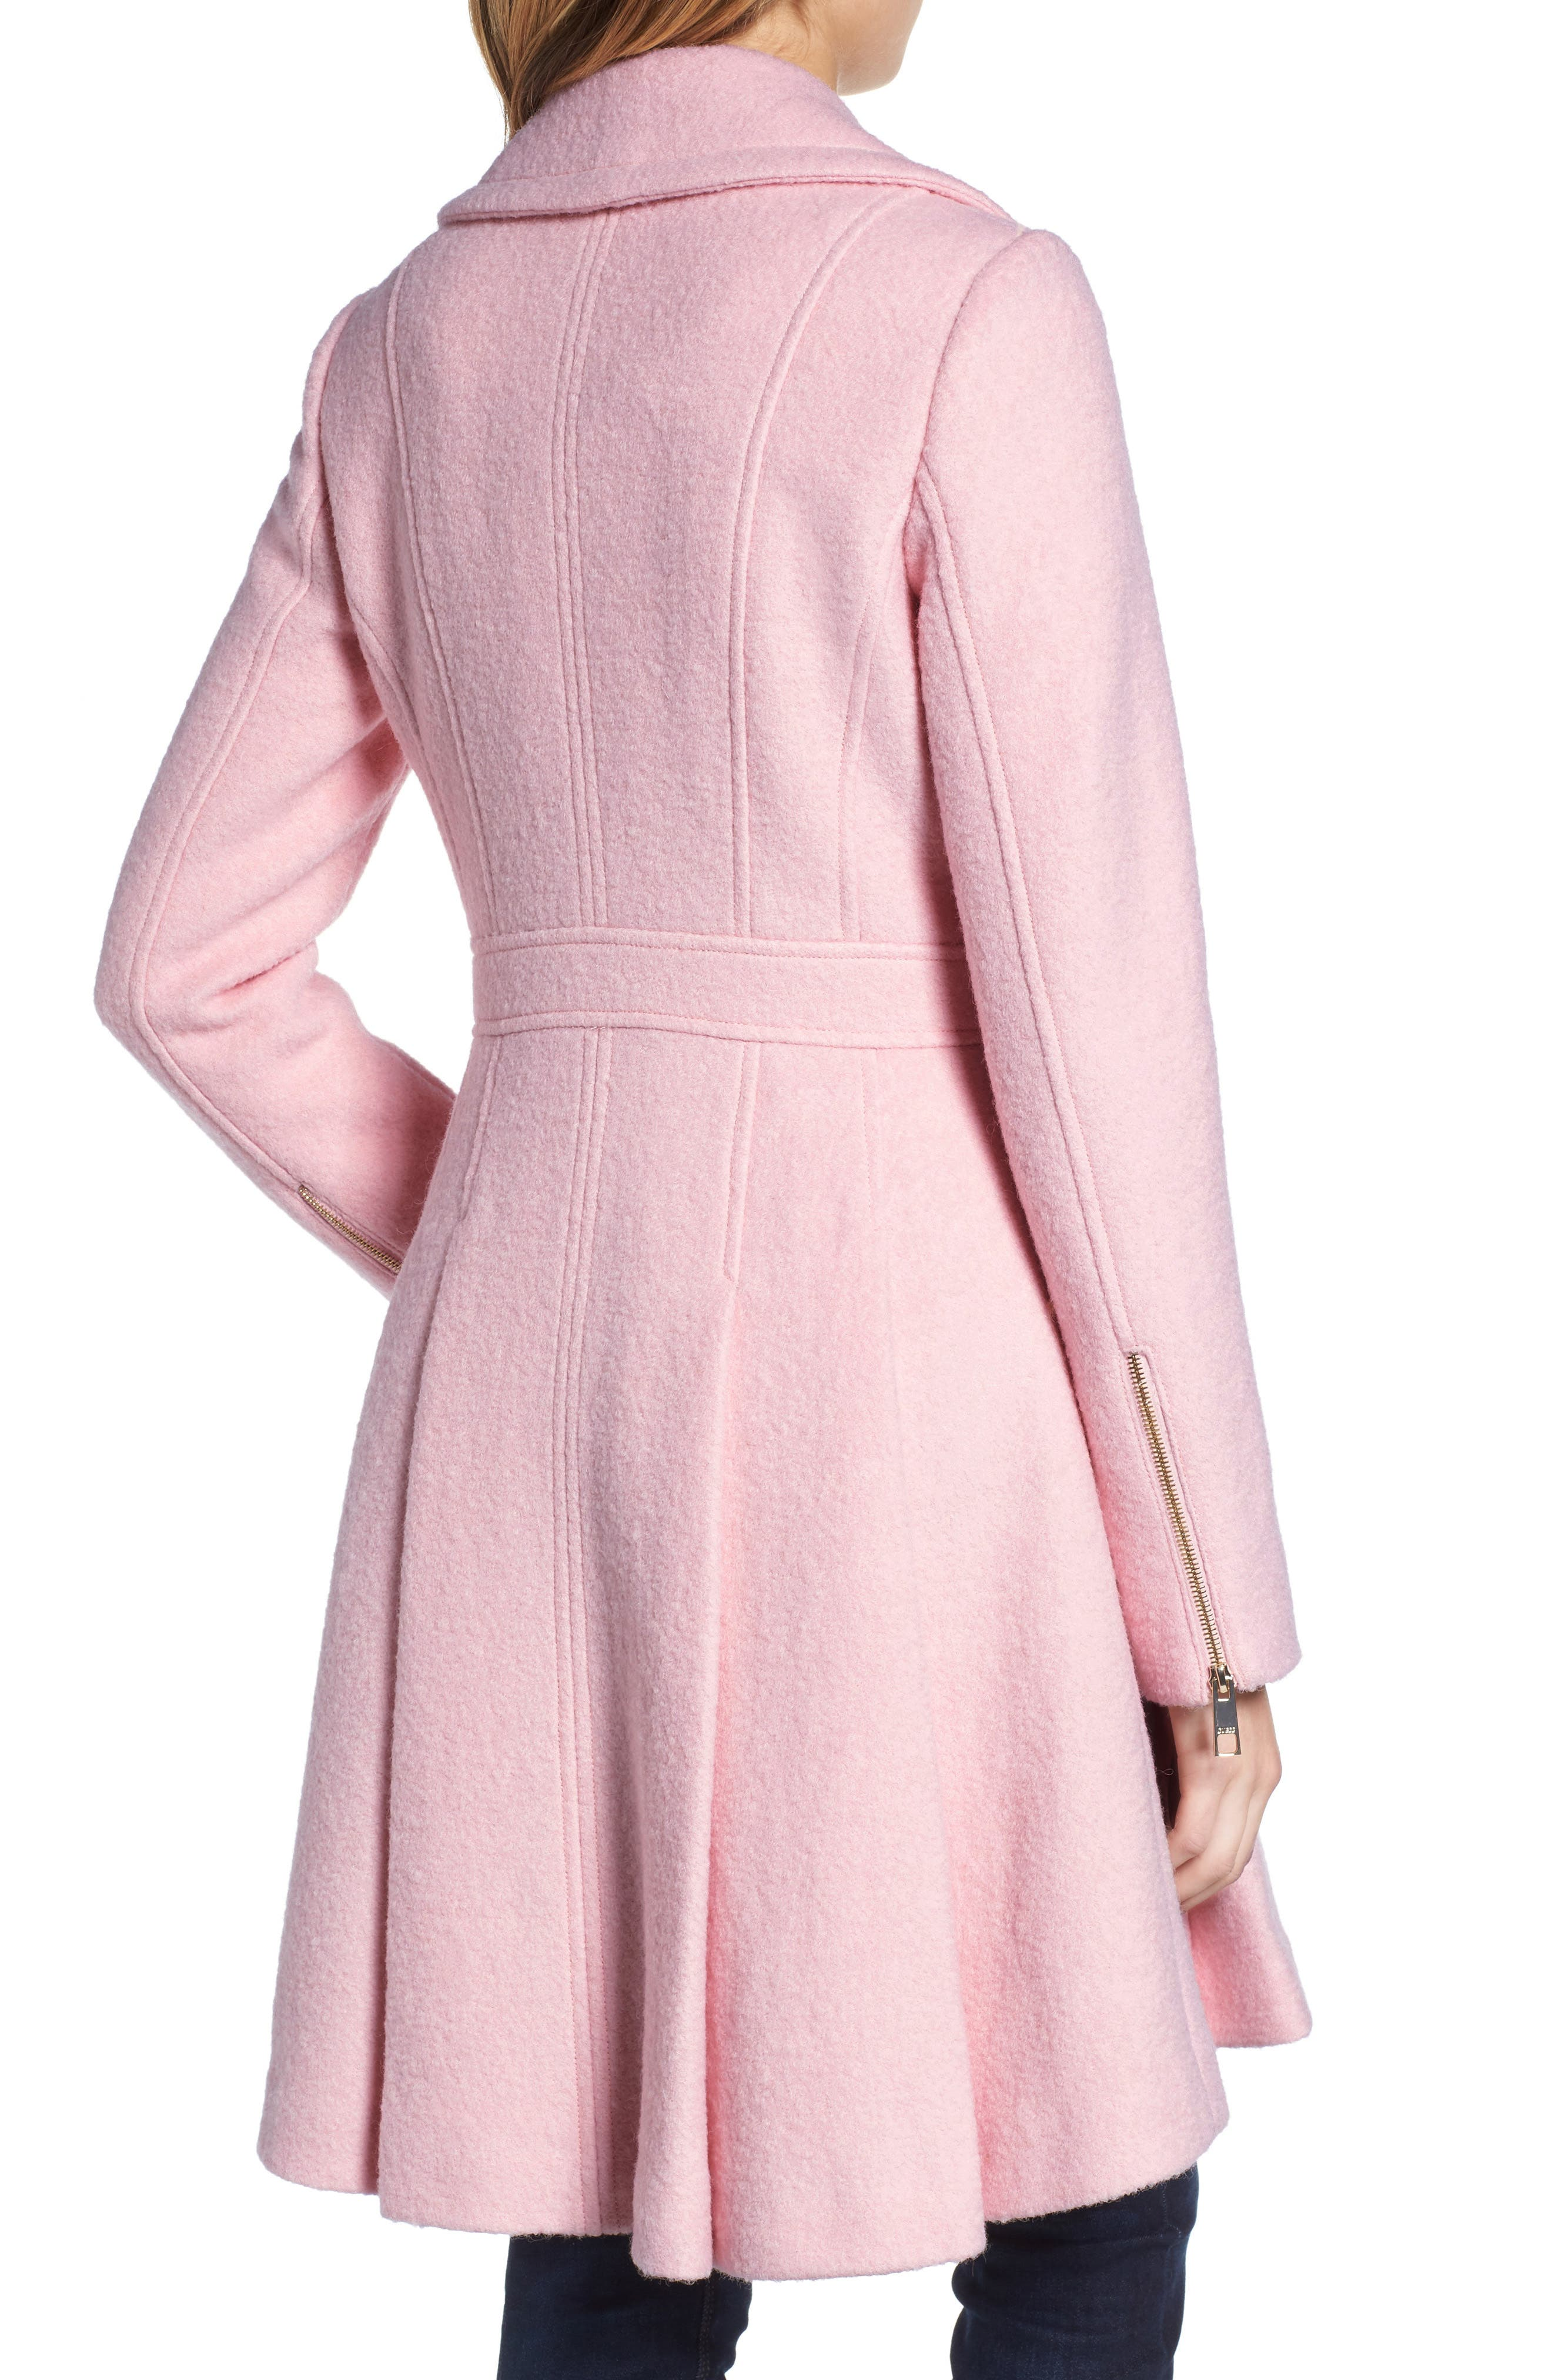 Double Breasted Wool Blend Coat,                             Alternate thumbnail 2, color,                             Pale Pink